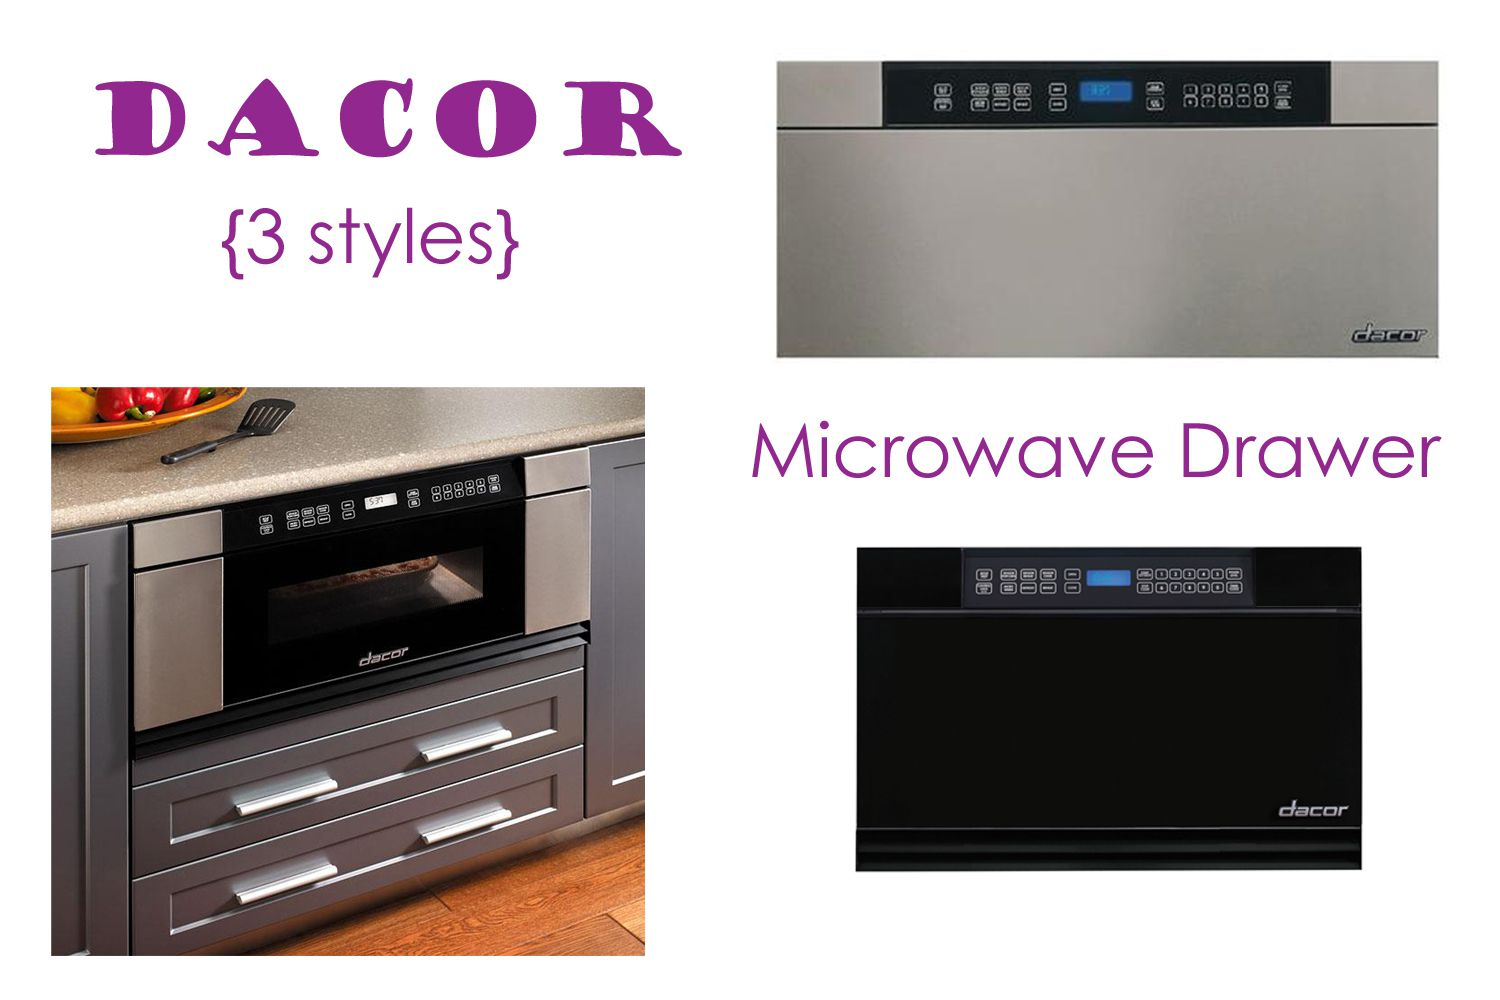 oven under drawer ovens microwave cooking counter kitchenaid drawers cu ft microwaves